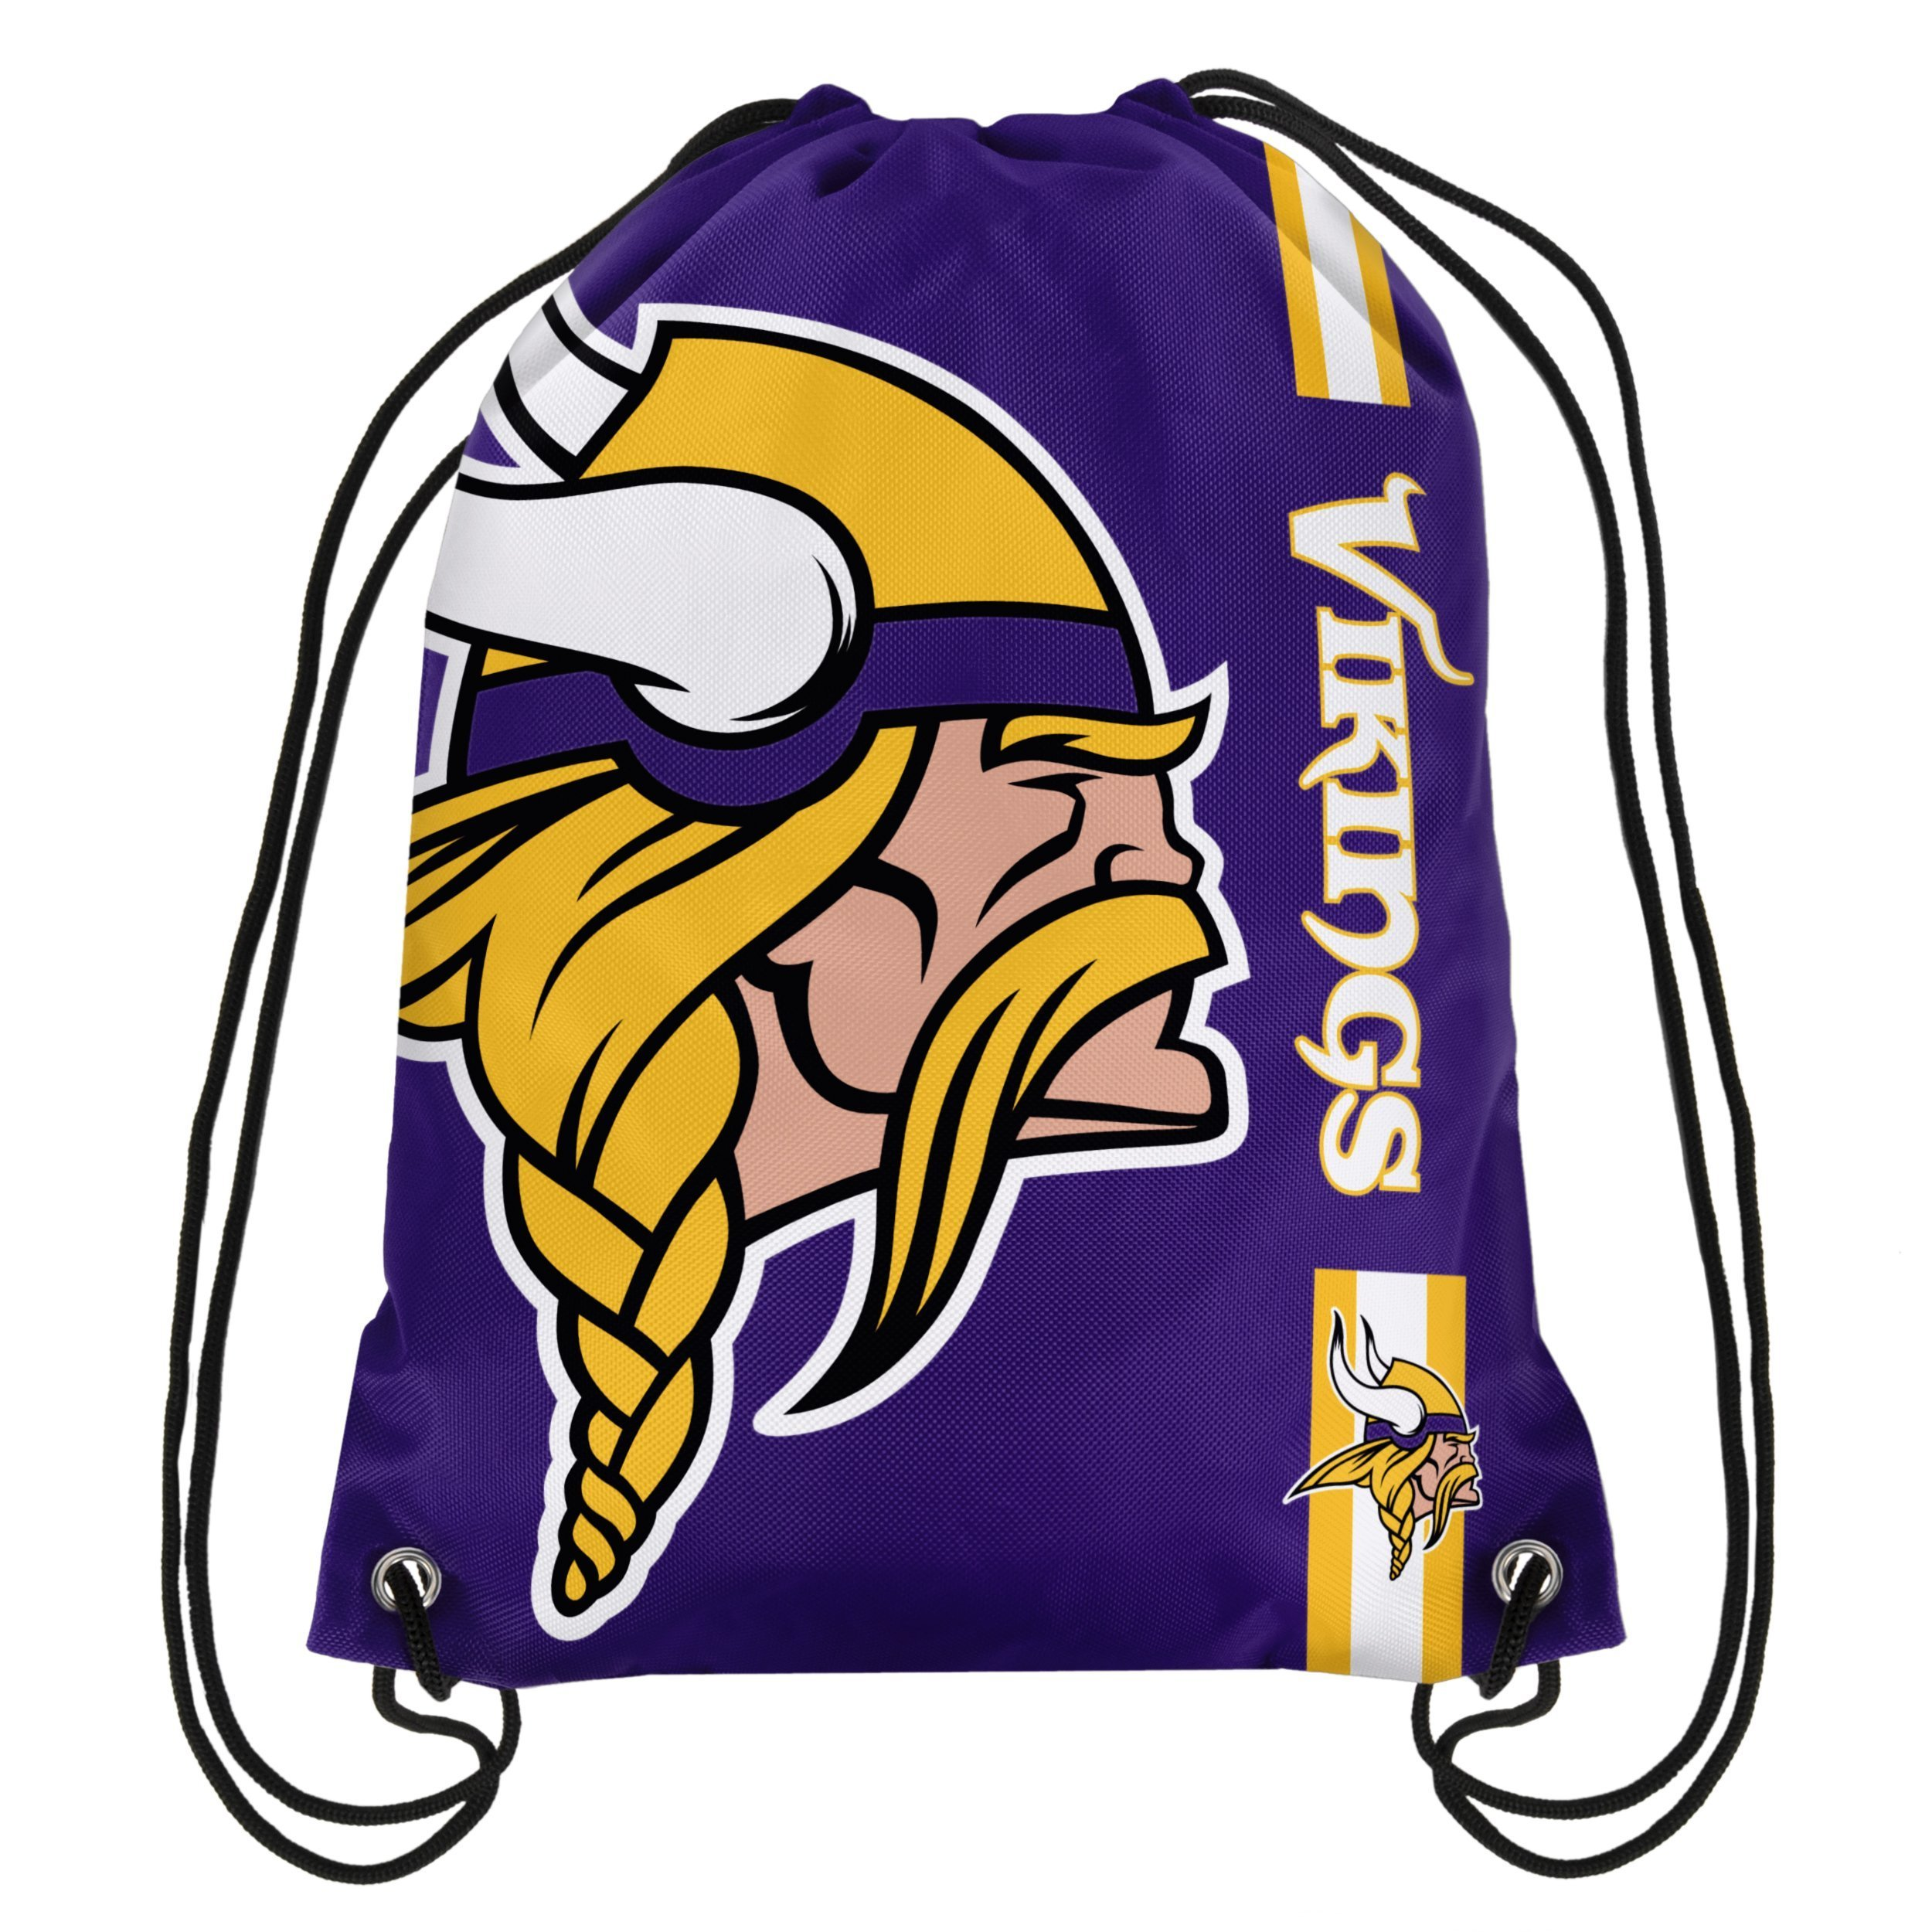 Buy Minnesota Vikings Now!